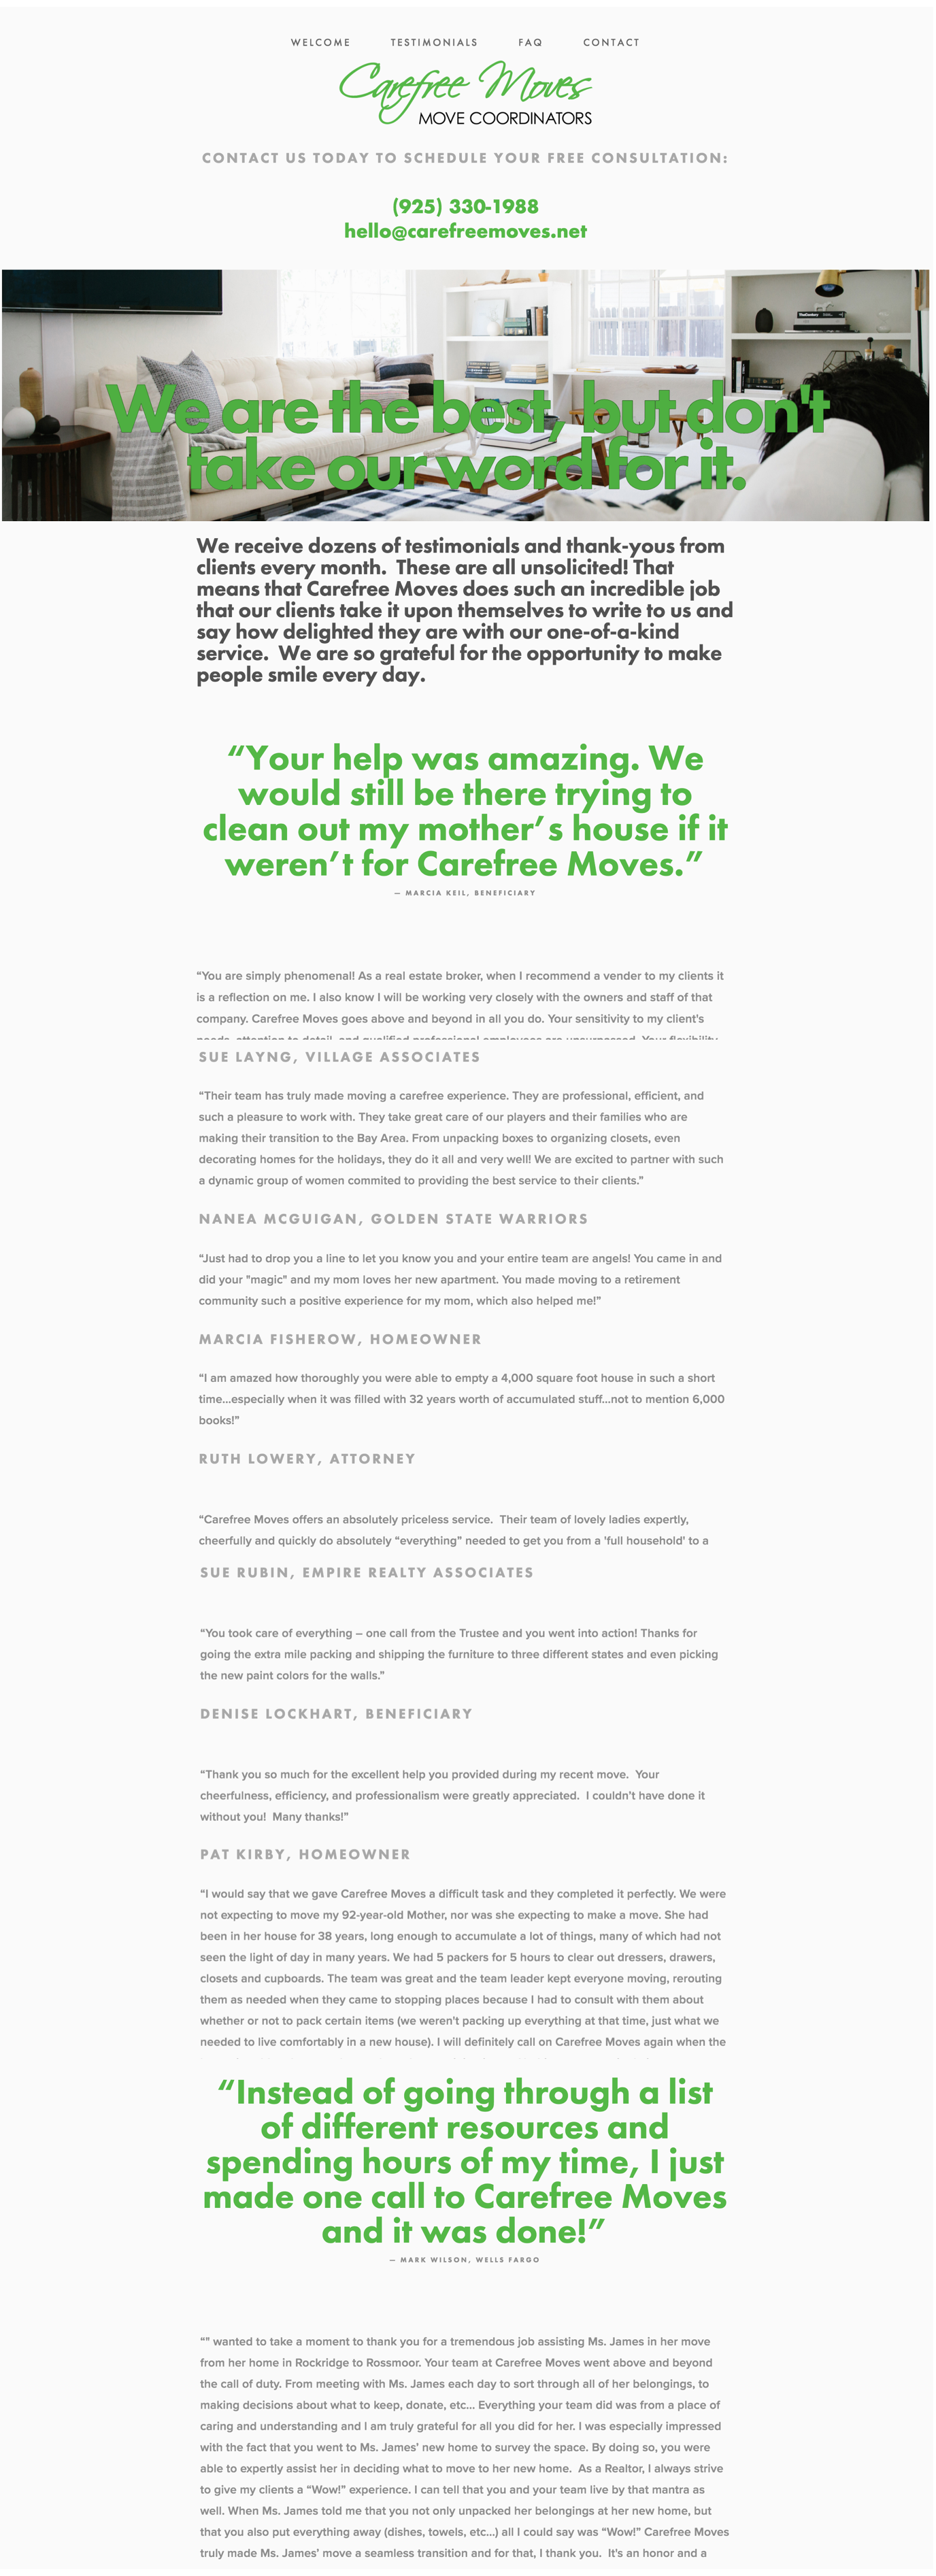 Carefree Moves Testimonials.png